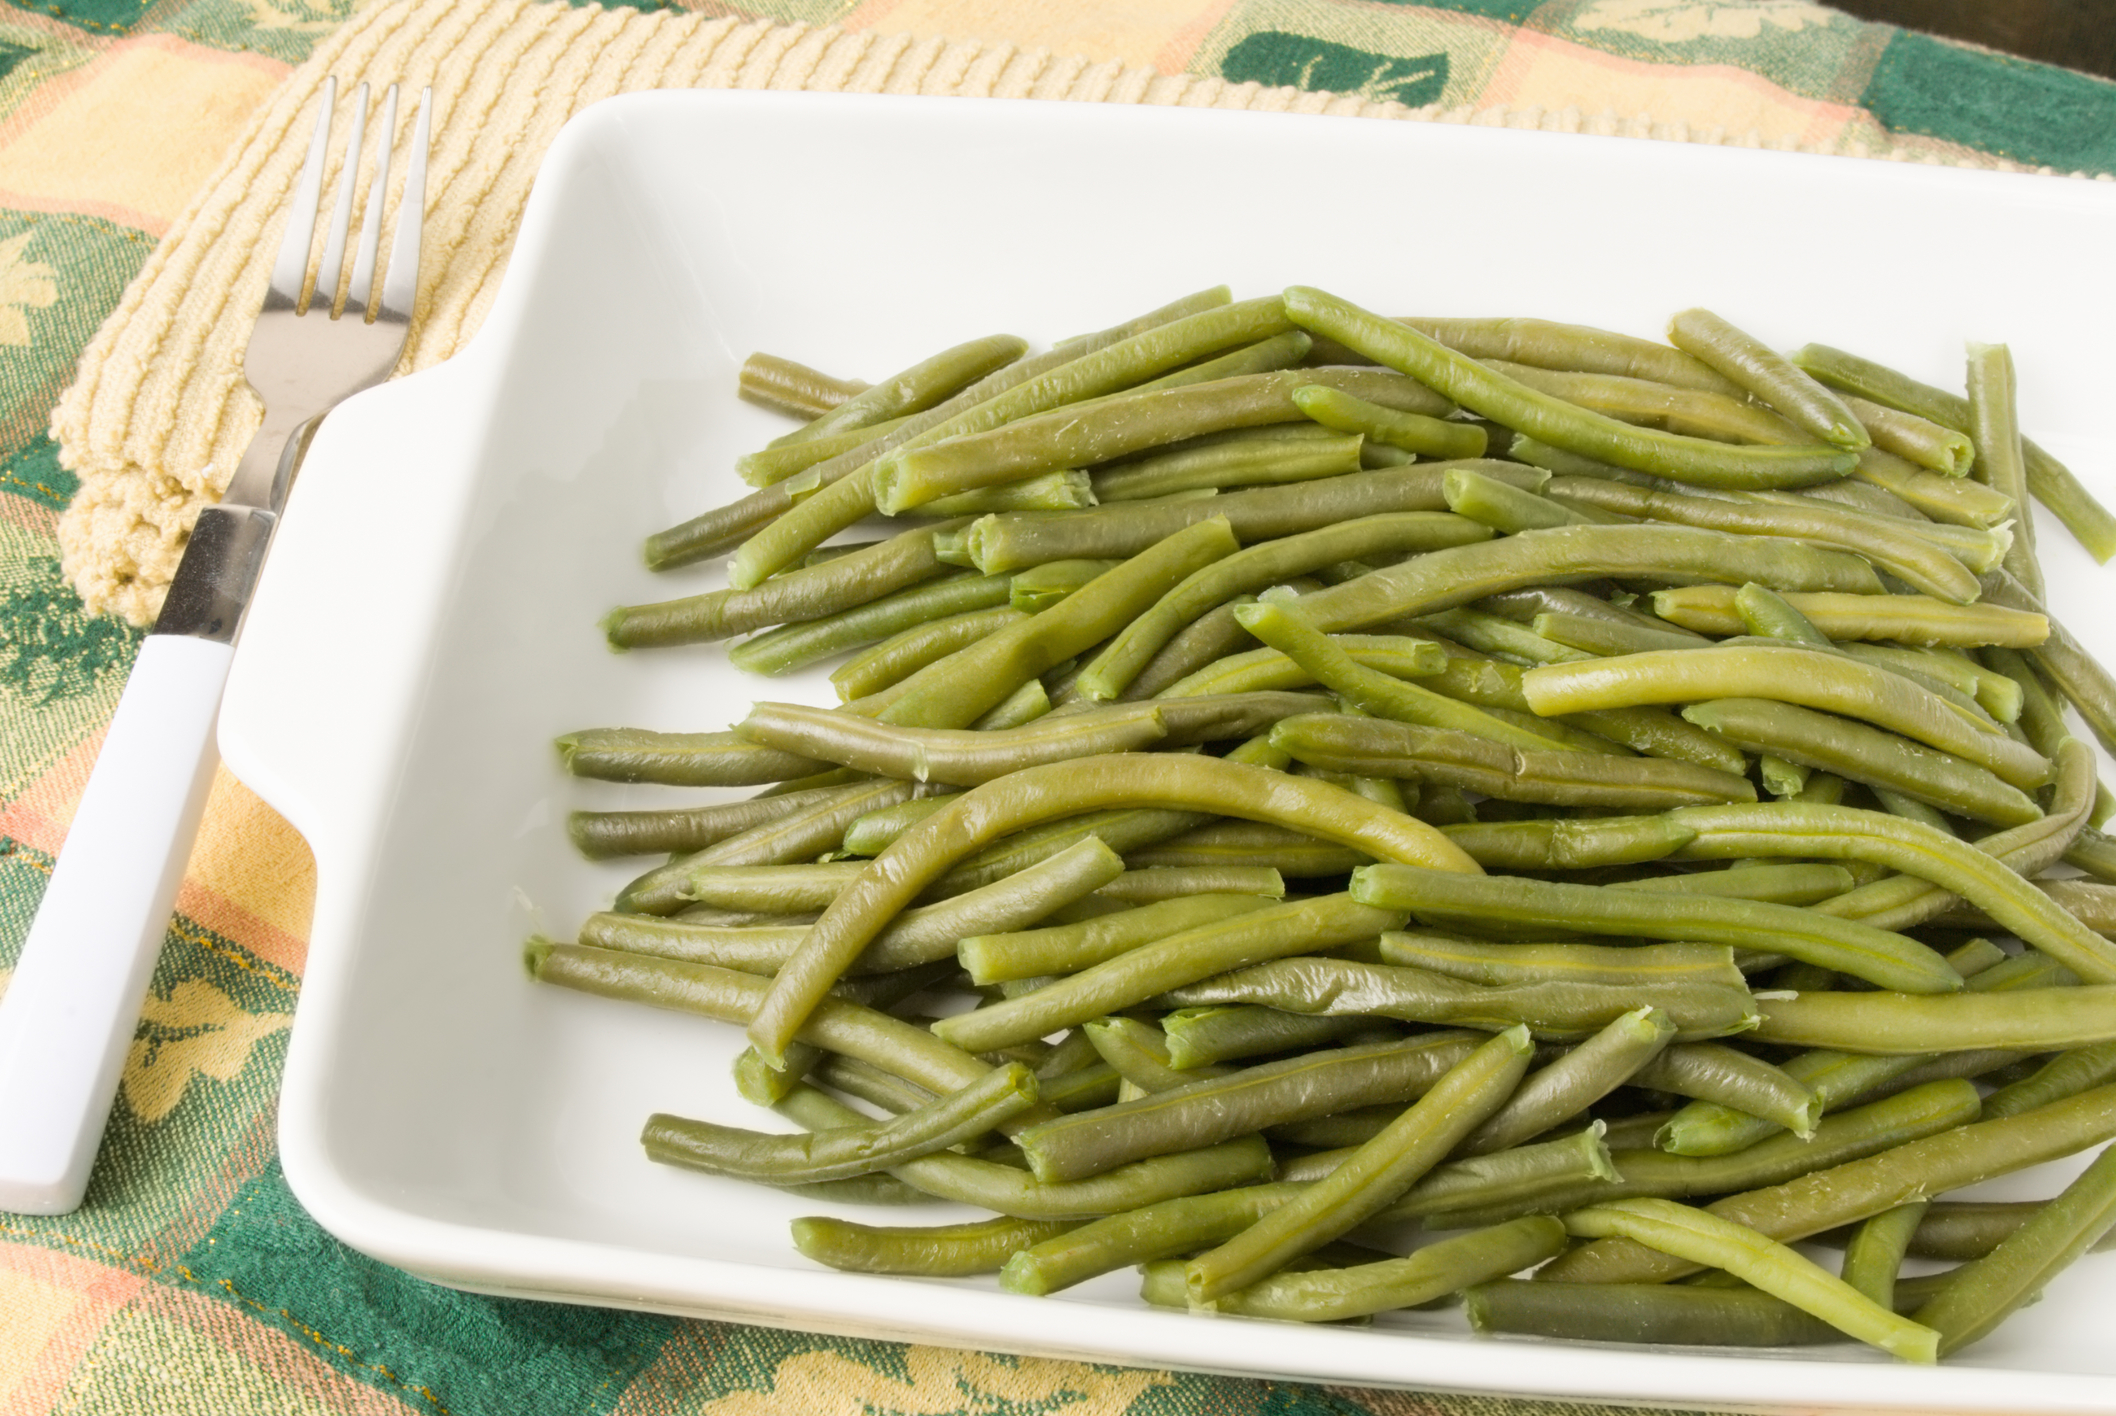 Herbed Green Beans 063H070-6855